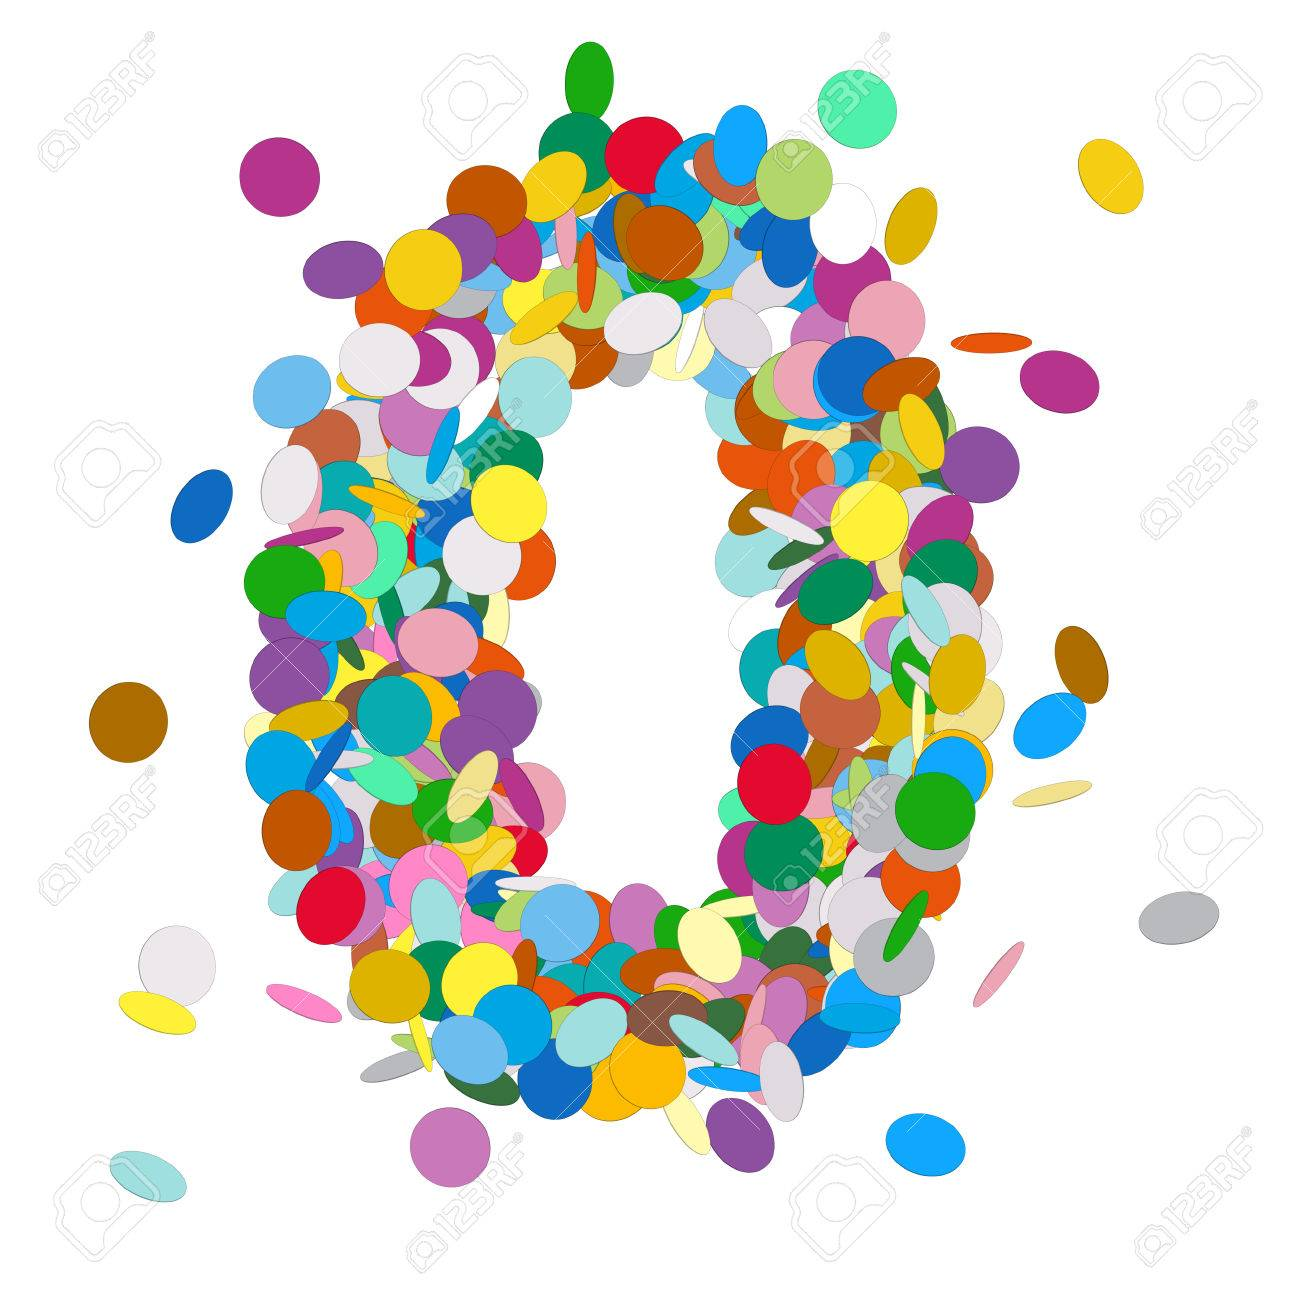 Abstract Colorful Vector Confetti Number Zero Null 0 Birthday Stock Photo Picture And Royalty Free Image Image 46391841